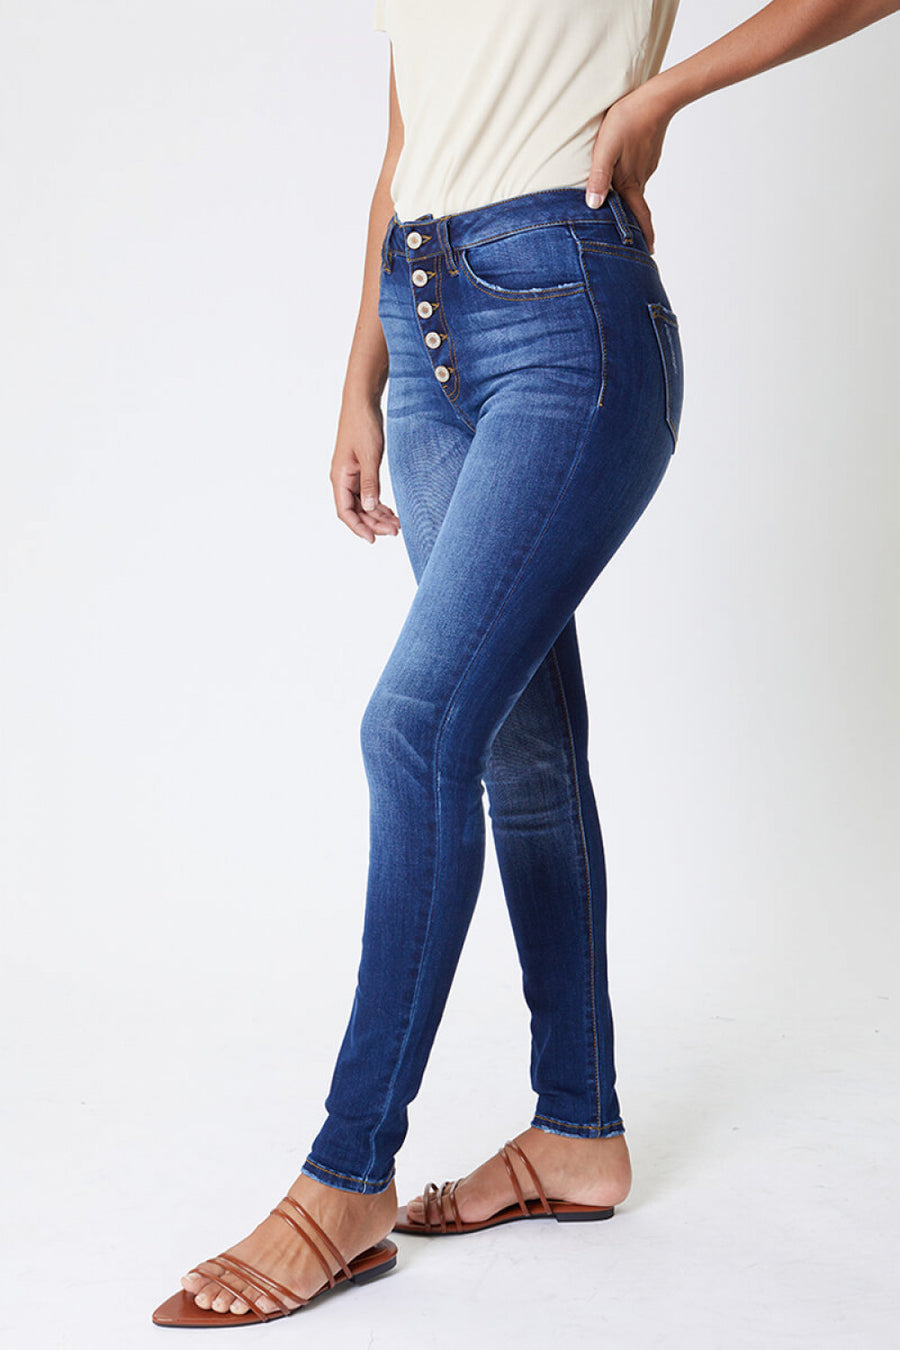 Kancan Exposed Button Jean